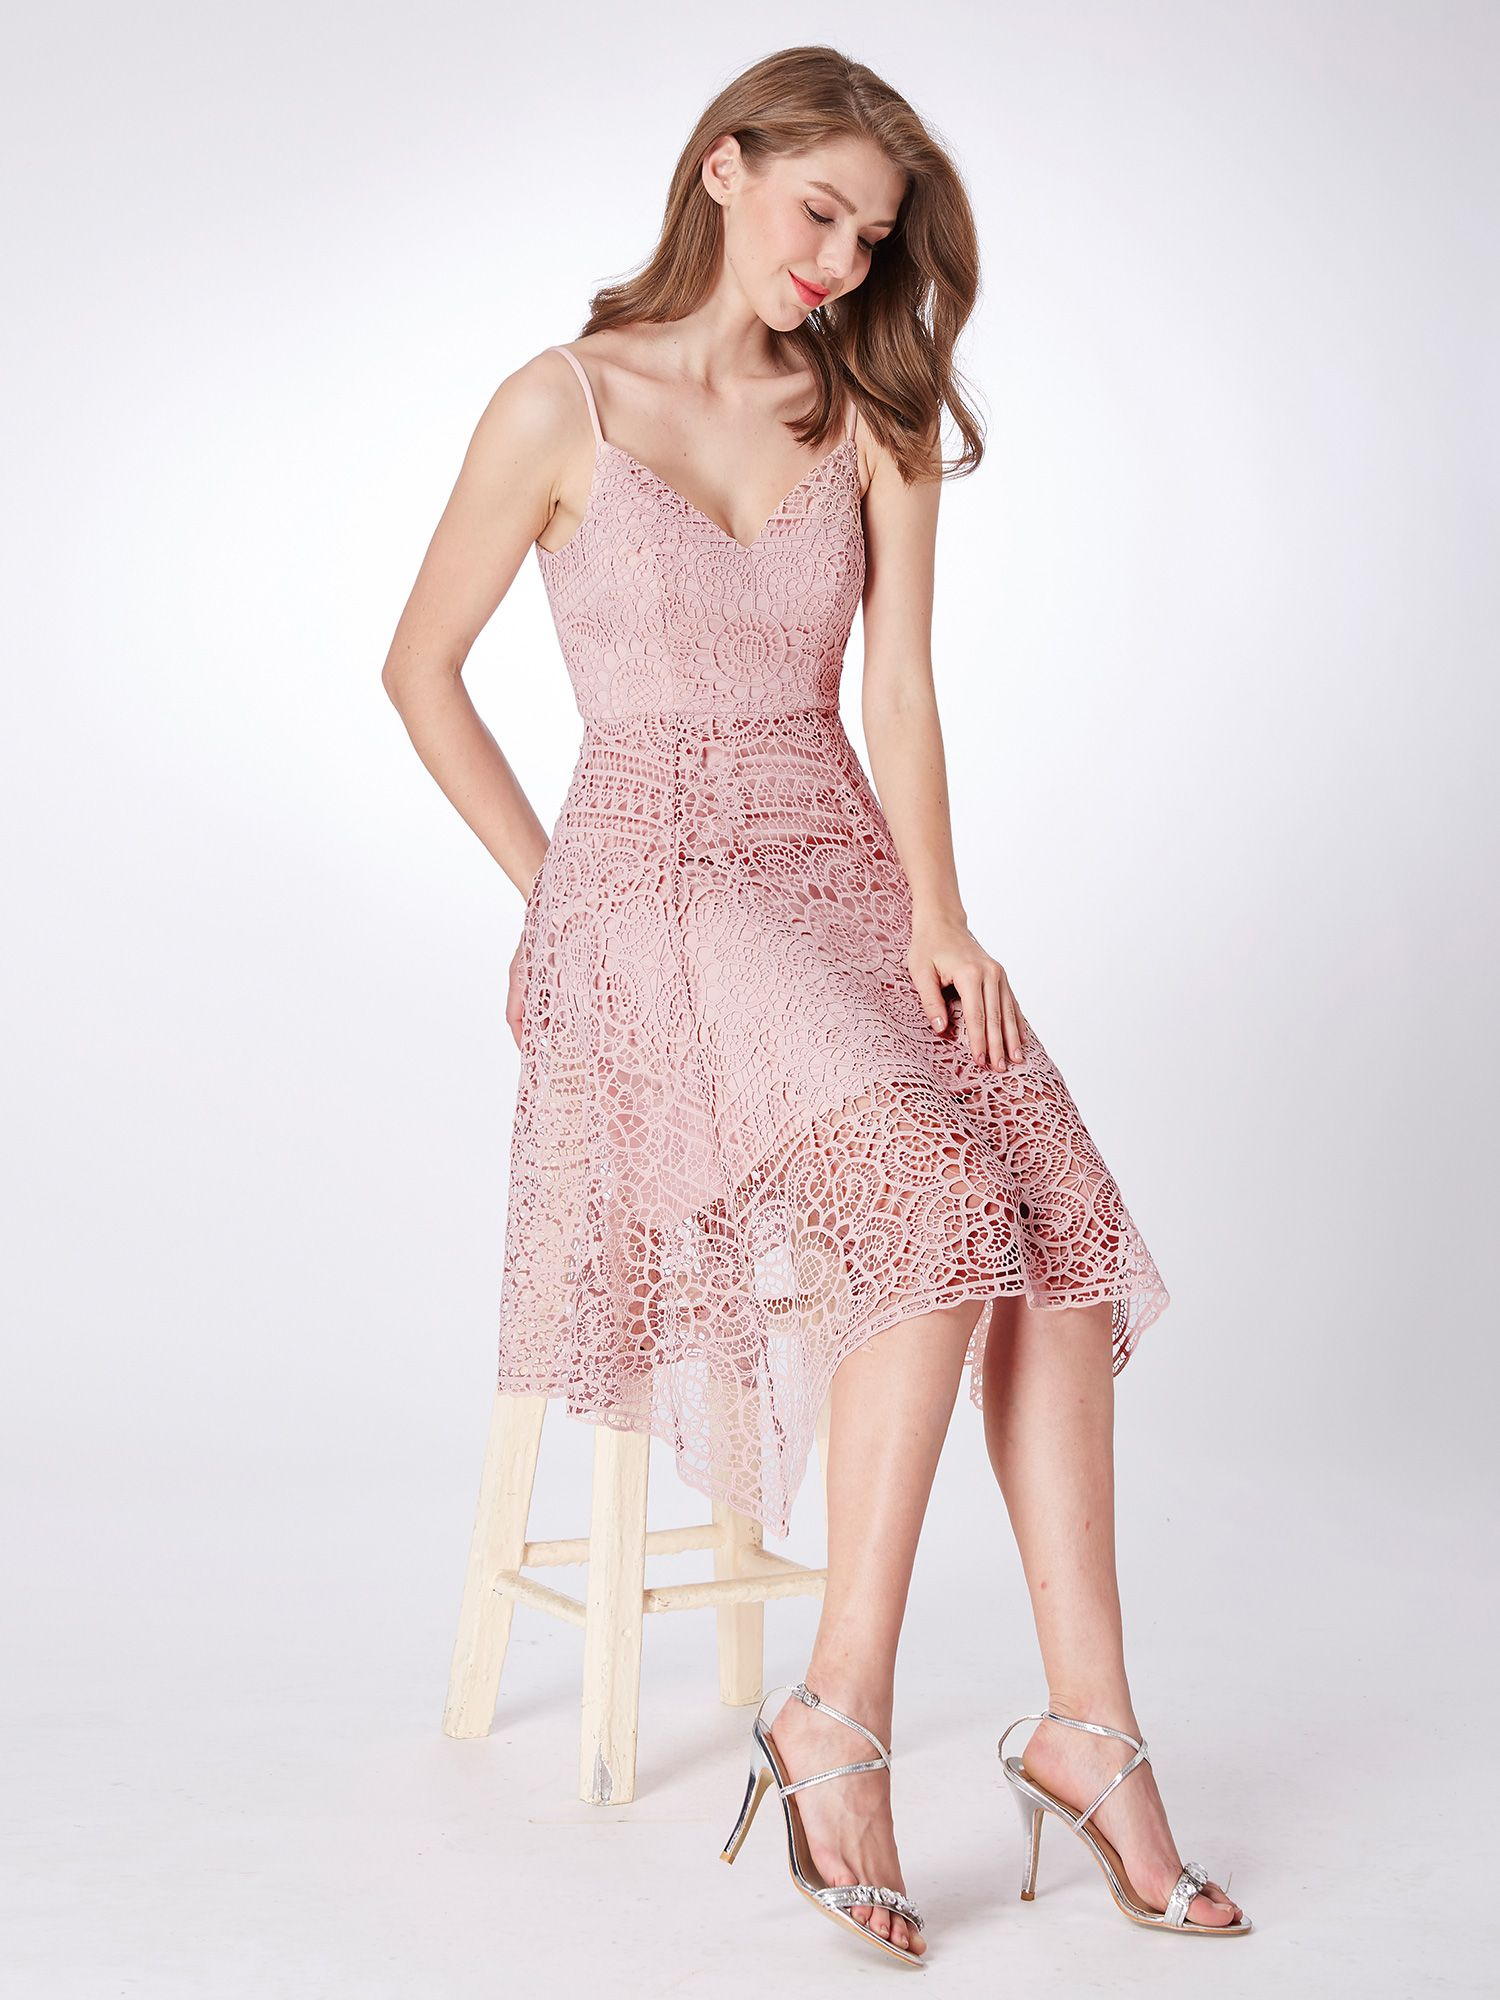 00a0eb6ba1443 Ever-Pretty Short Formal Dress Lace Spaghetti Strap Bridesmaid Gown Pink  04036#Dress#Lace#Formal